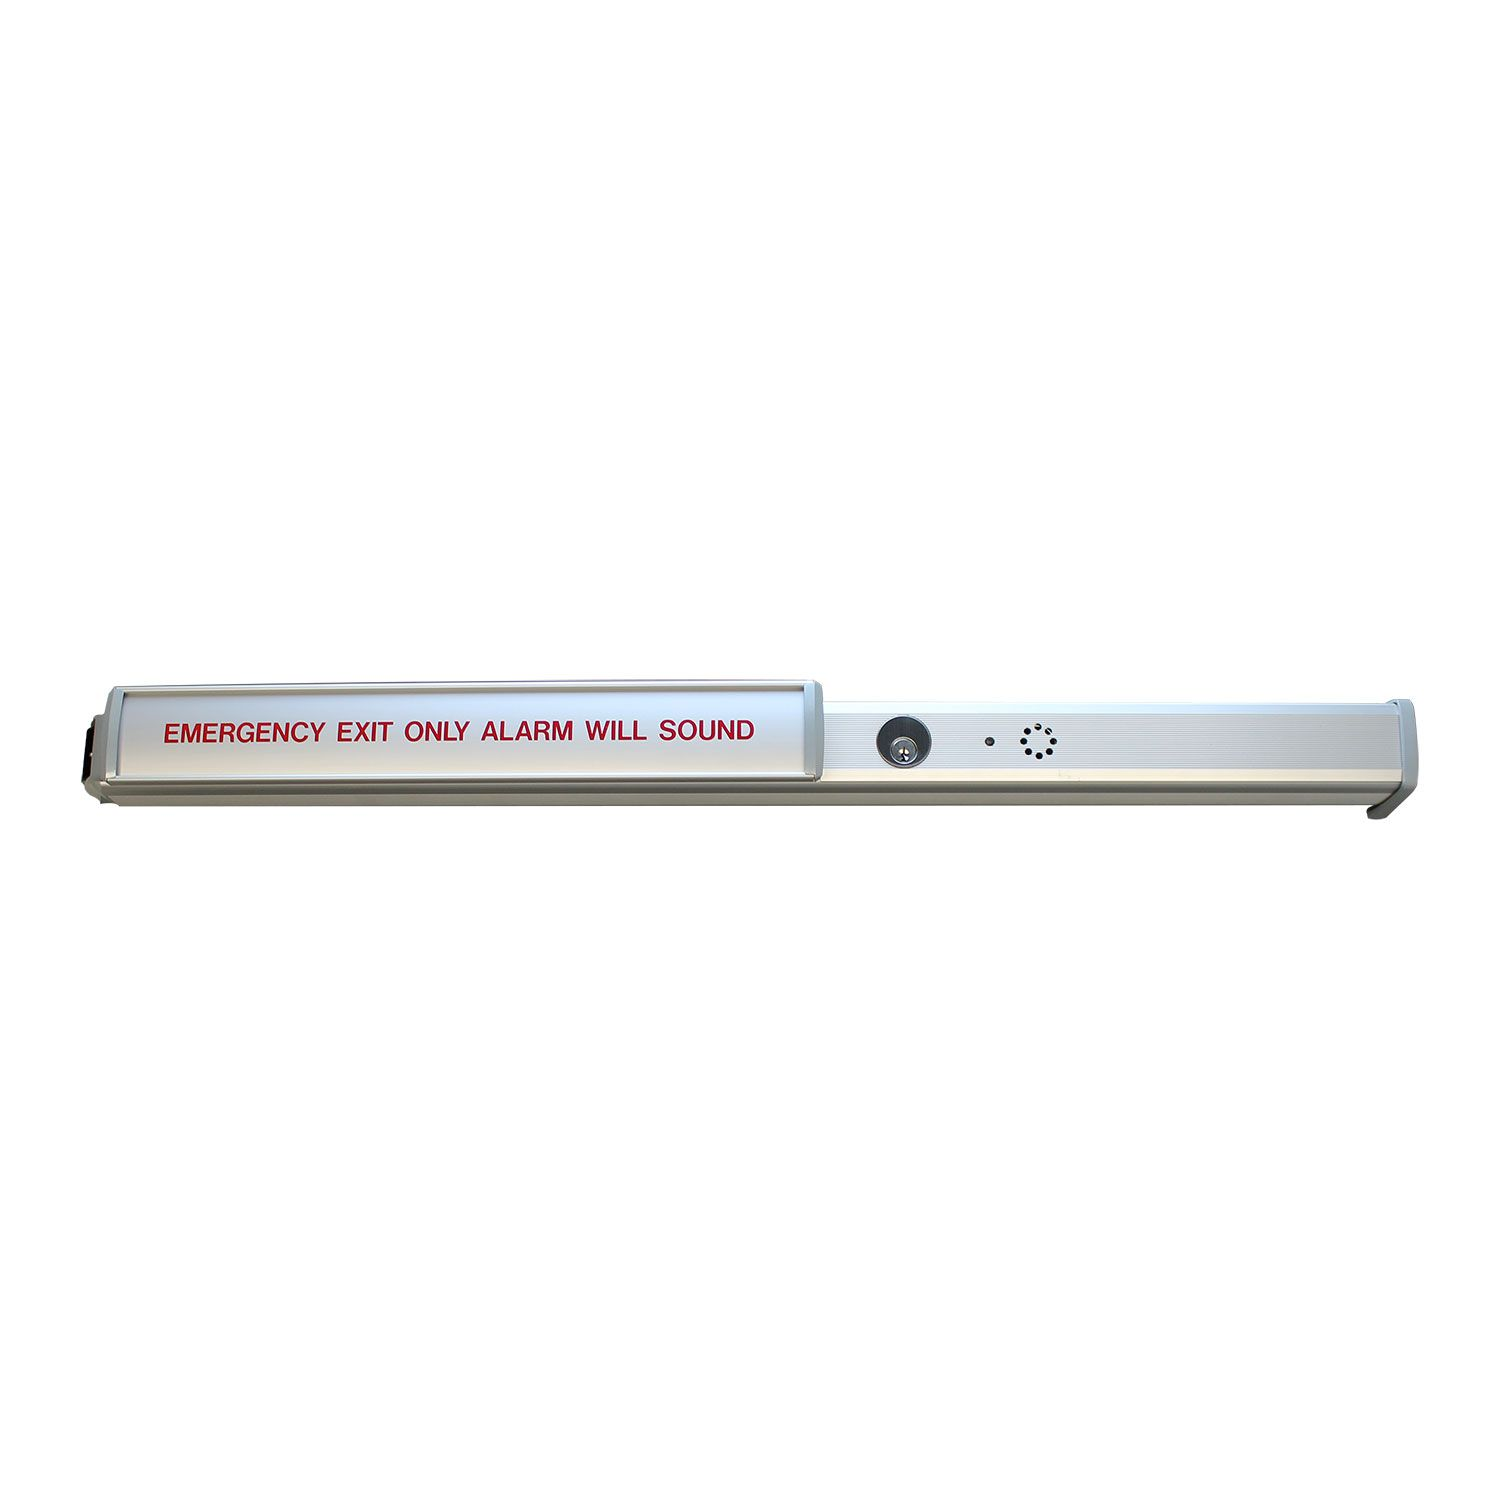 Lockey USA High Security Alarmed Panic Bar PB2500-ALARM - Interlocking Latch & Strike